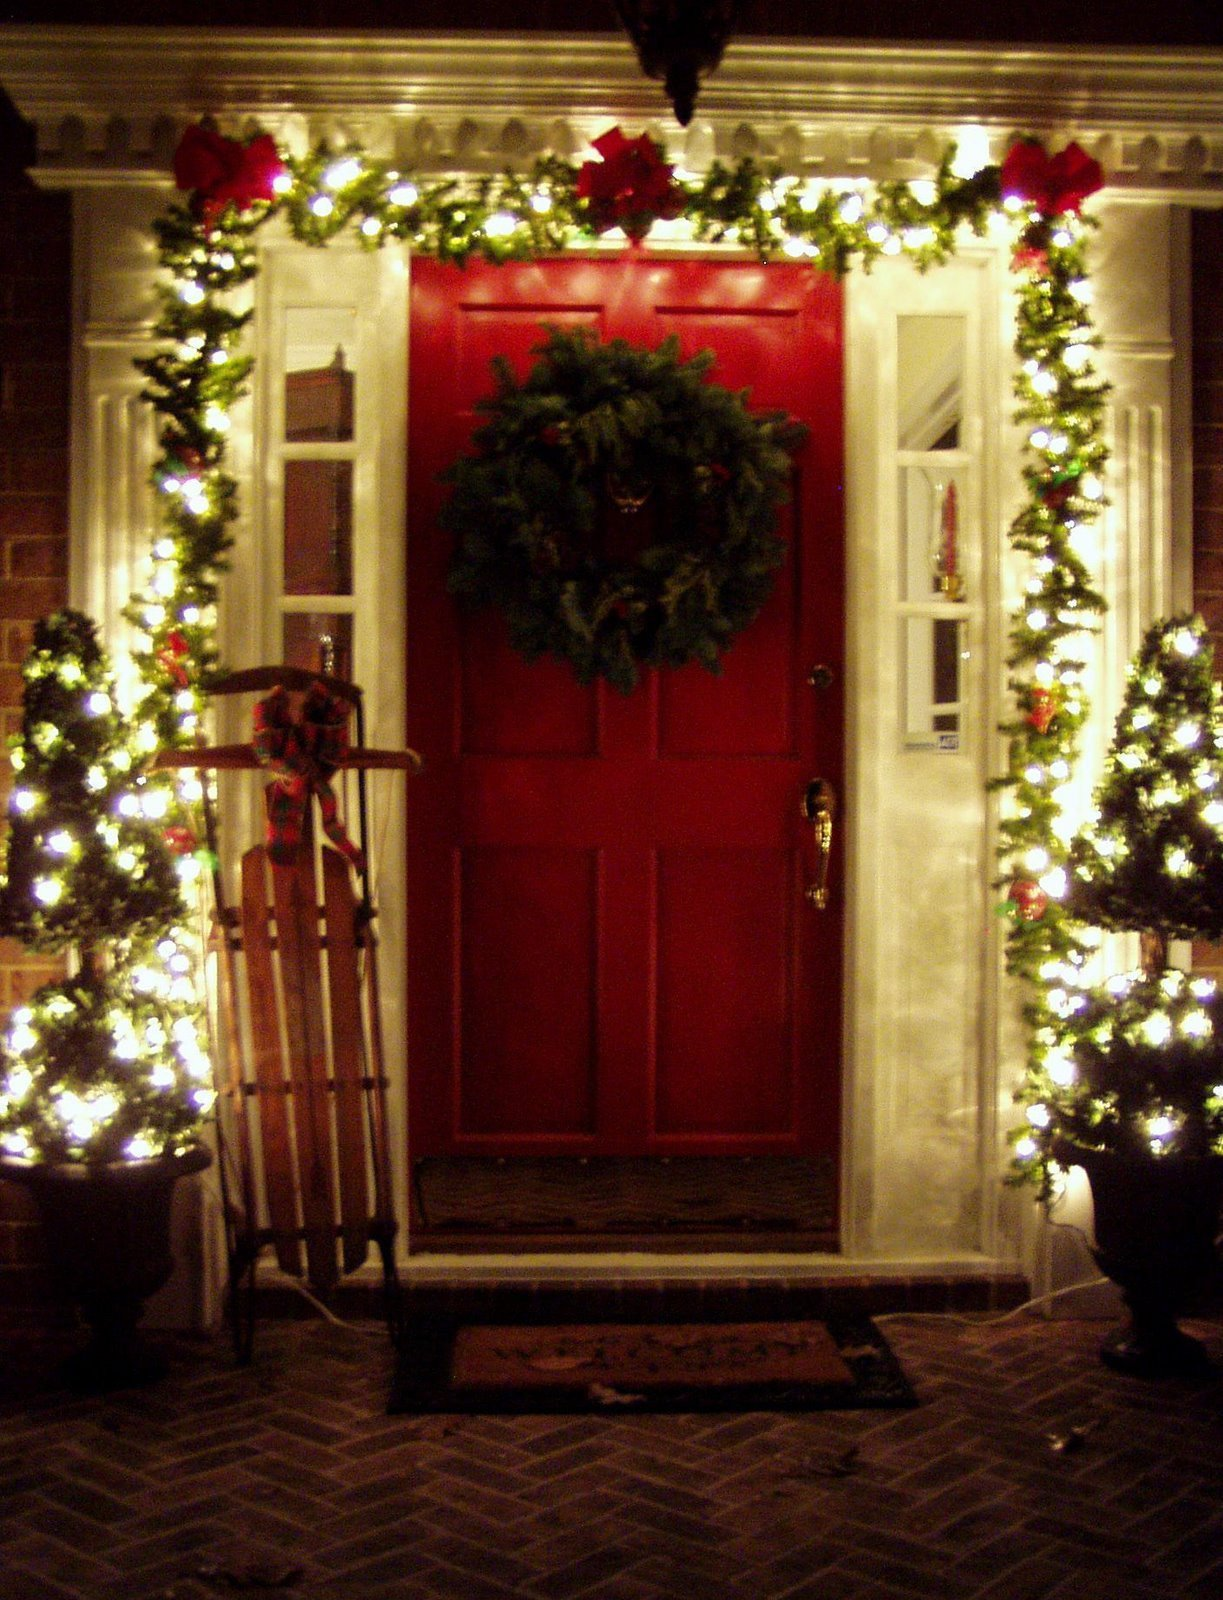 Decorating the Front Porch for Christmas 2008